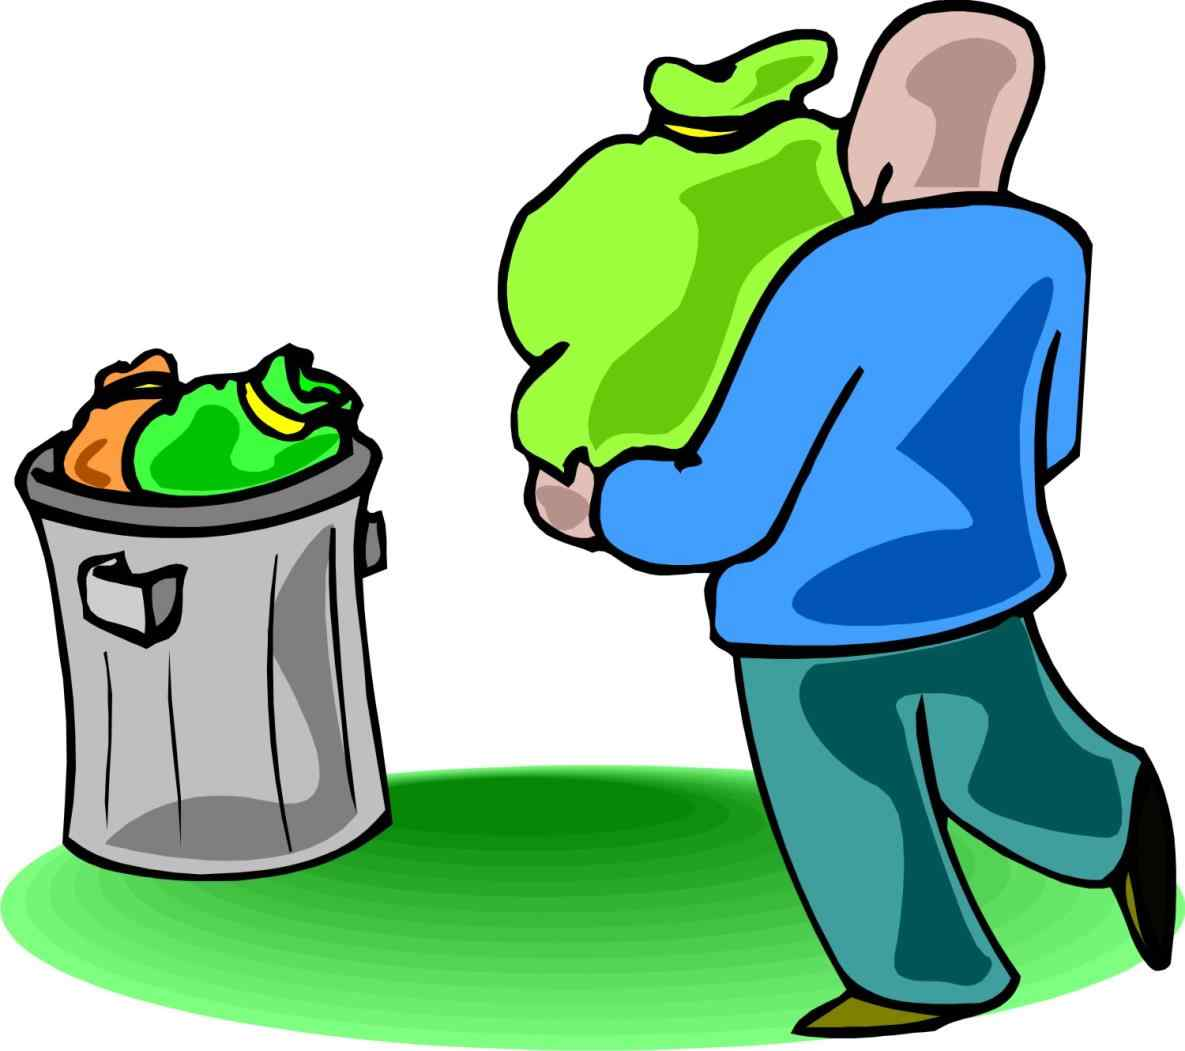 Throw garbage clipart clip art free stock Pictures Of Trash | Free download best Pictures Of Trash on ... clip art free stock